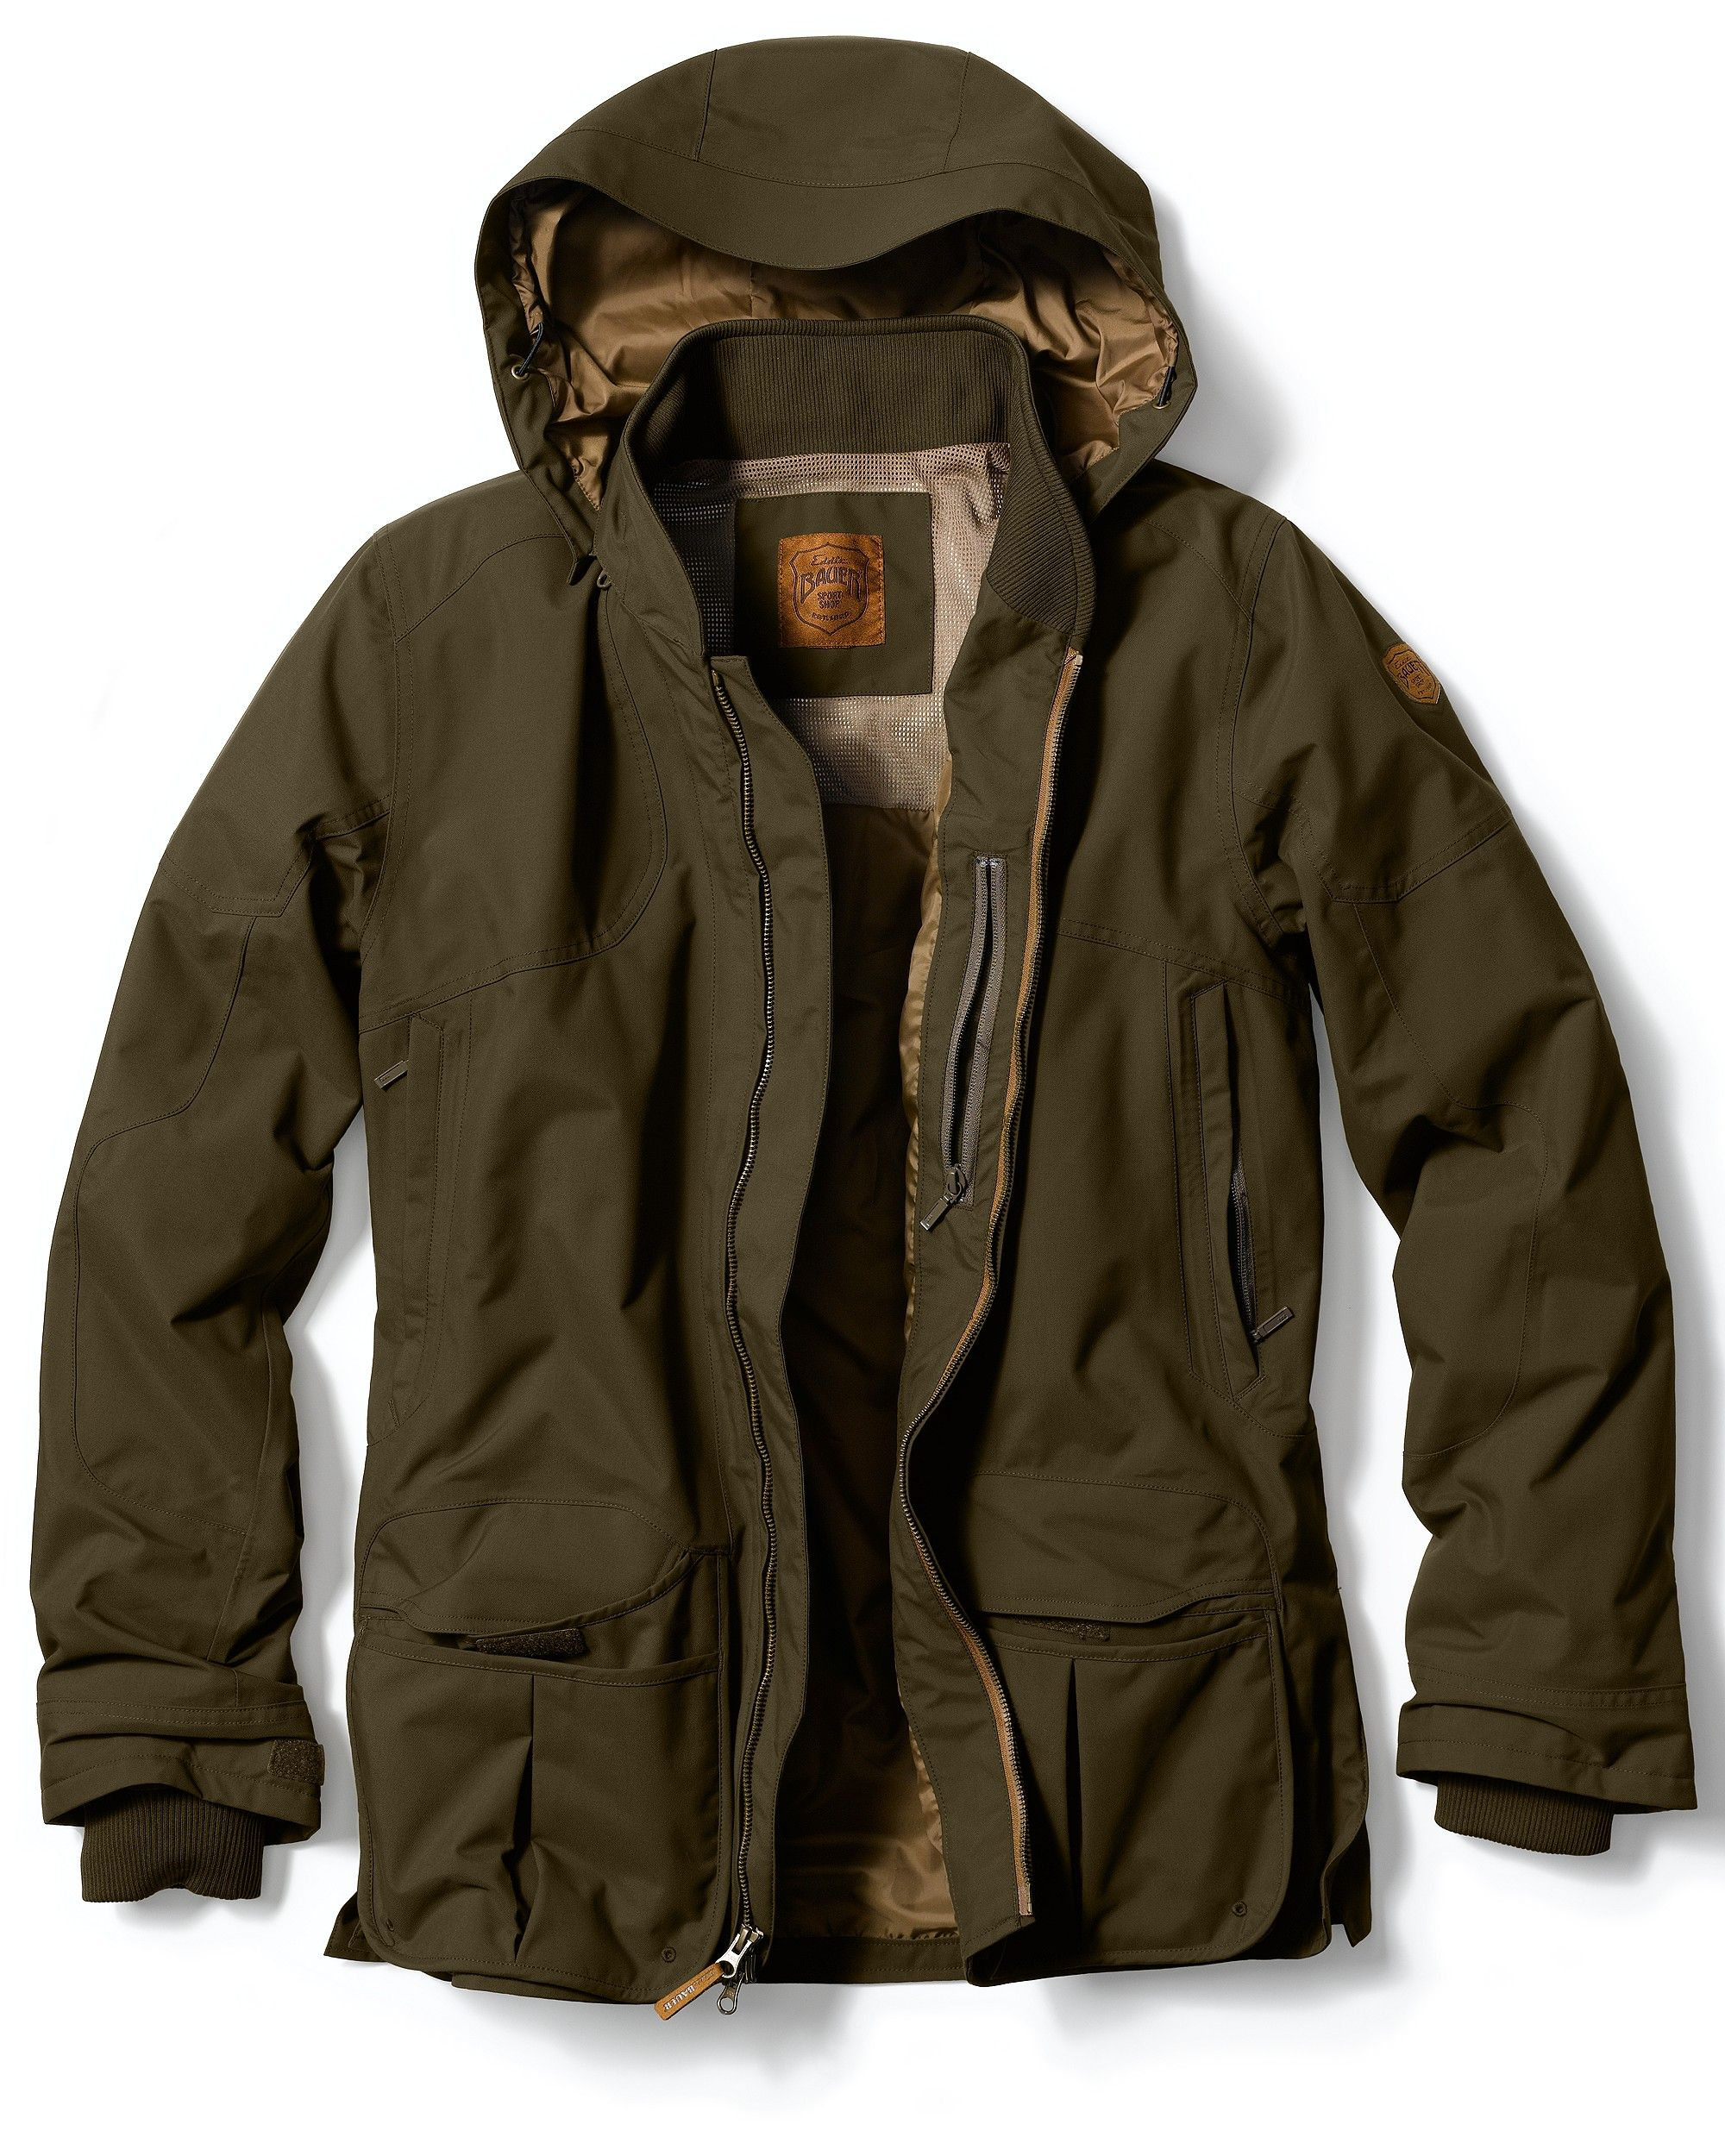 Waterproof Shooting Jacket | If you spend a lot of time at an ...